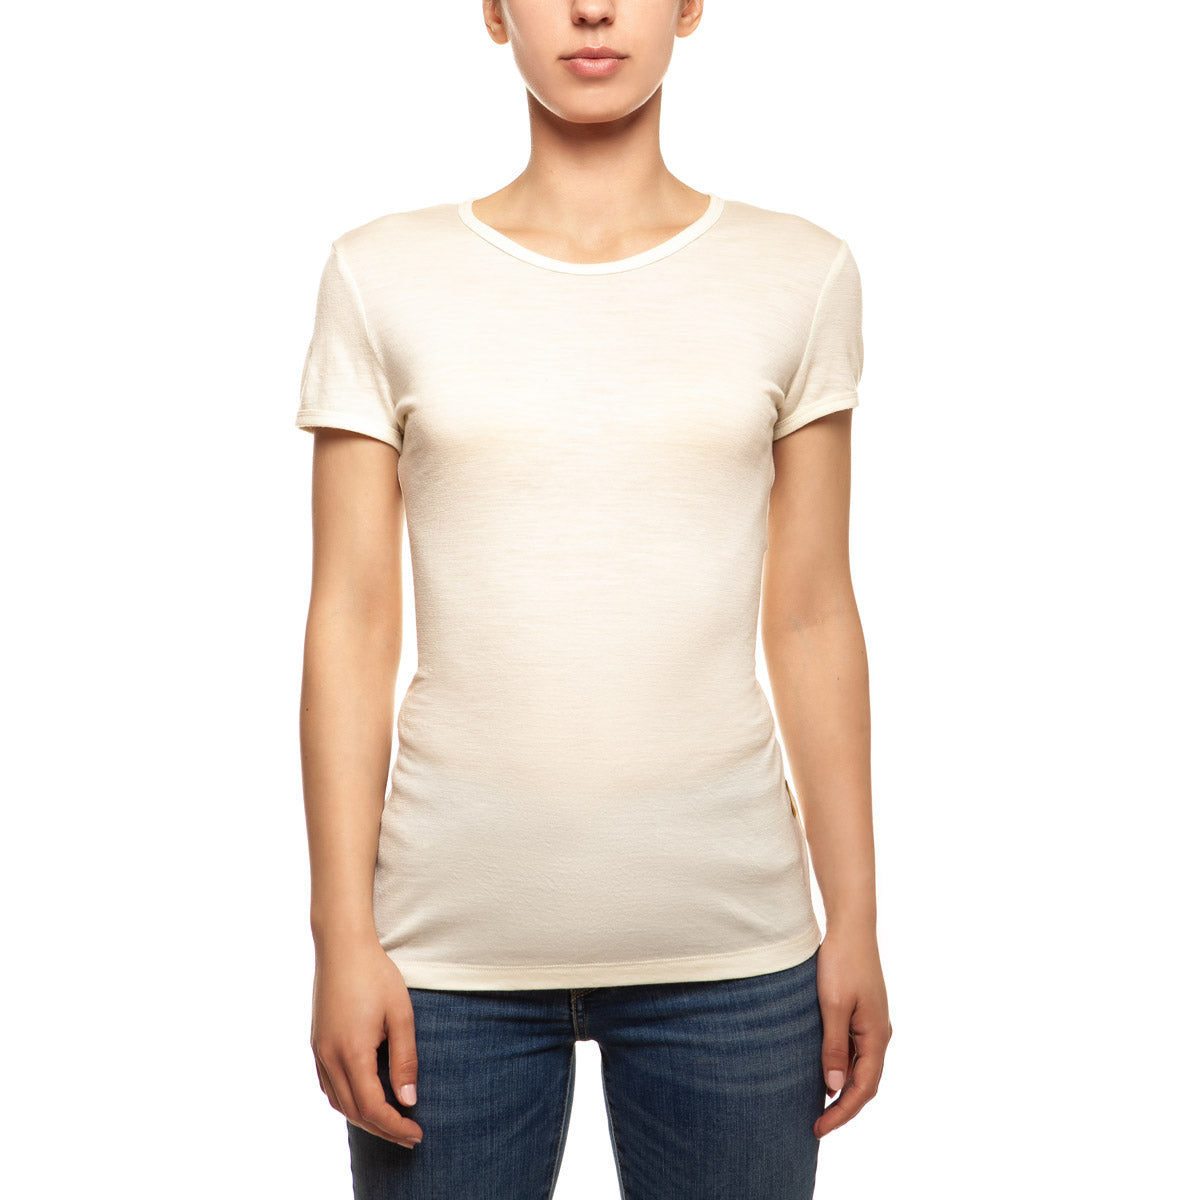 menique Women's Merino 160 Short Sleeve Crew Natural Color